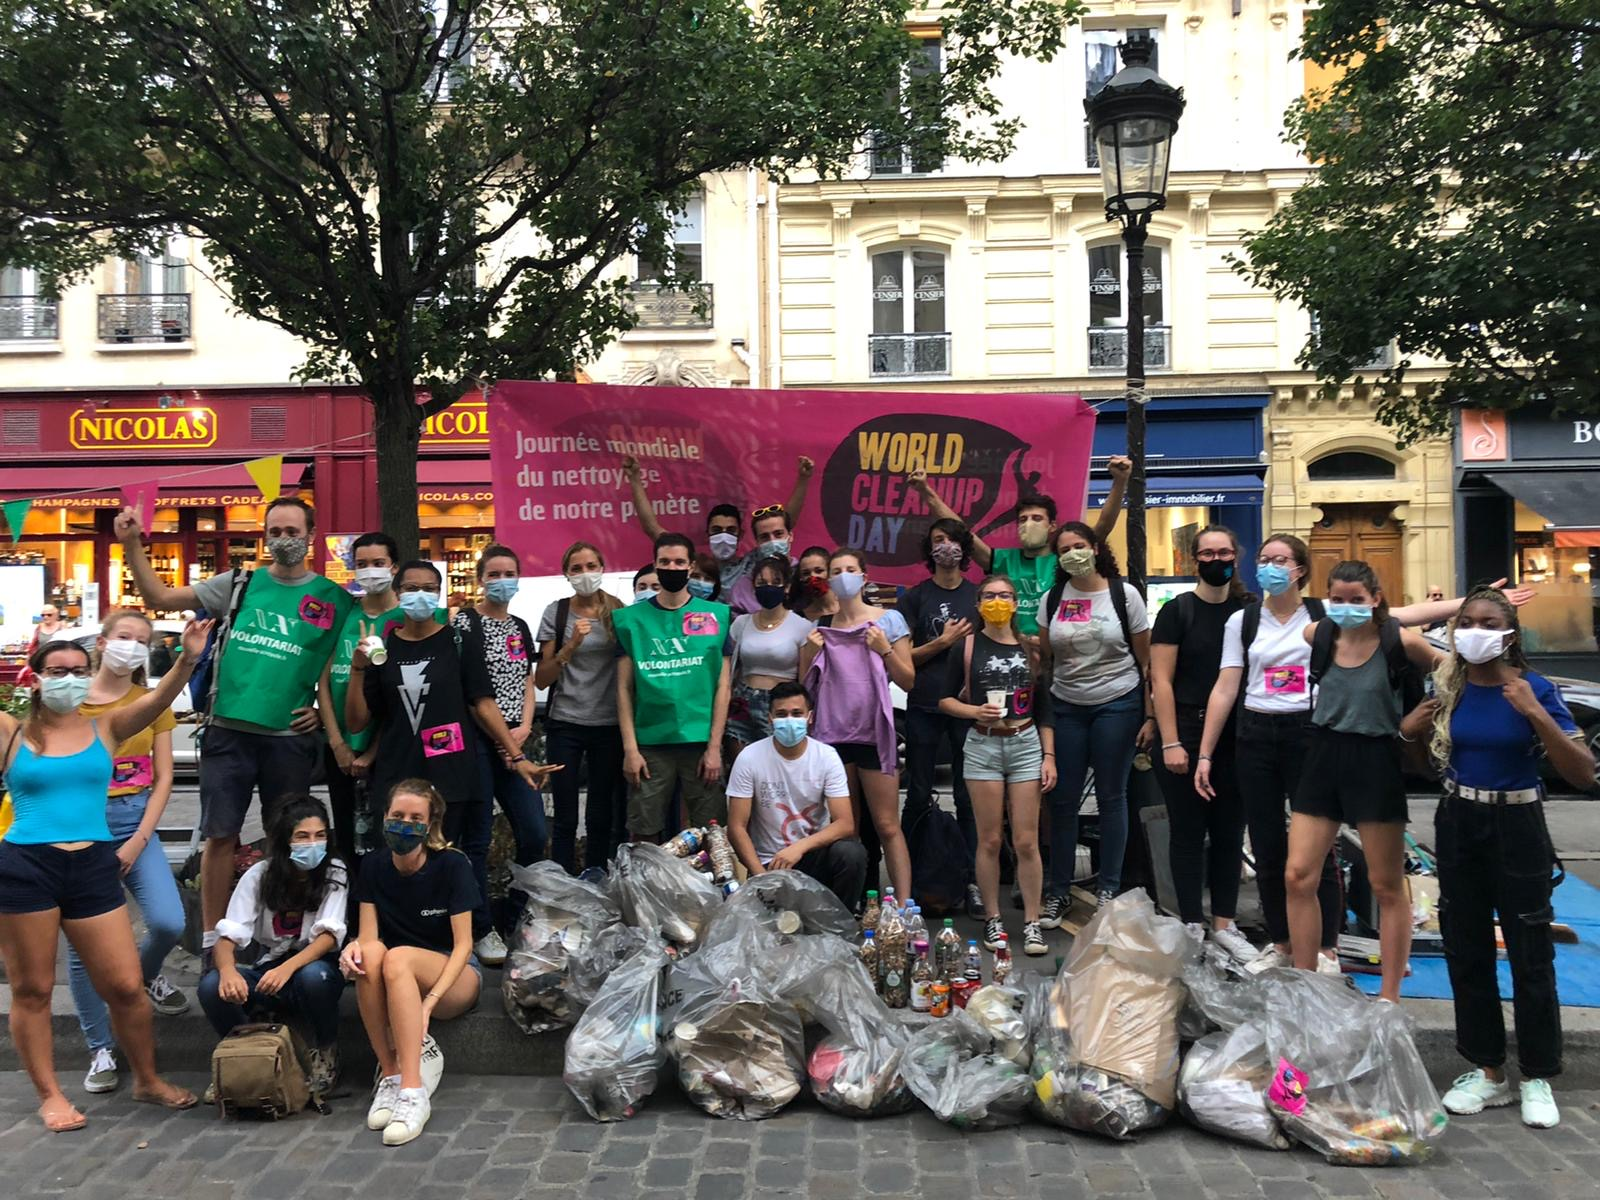 WorldCleanUp-Day-2020